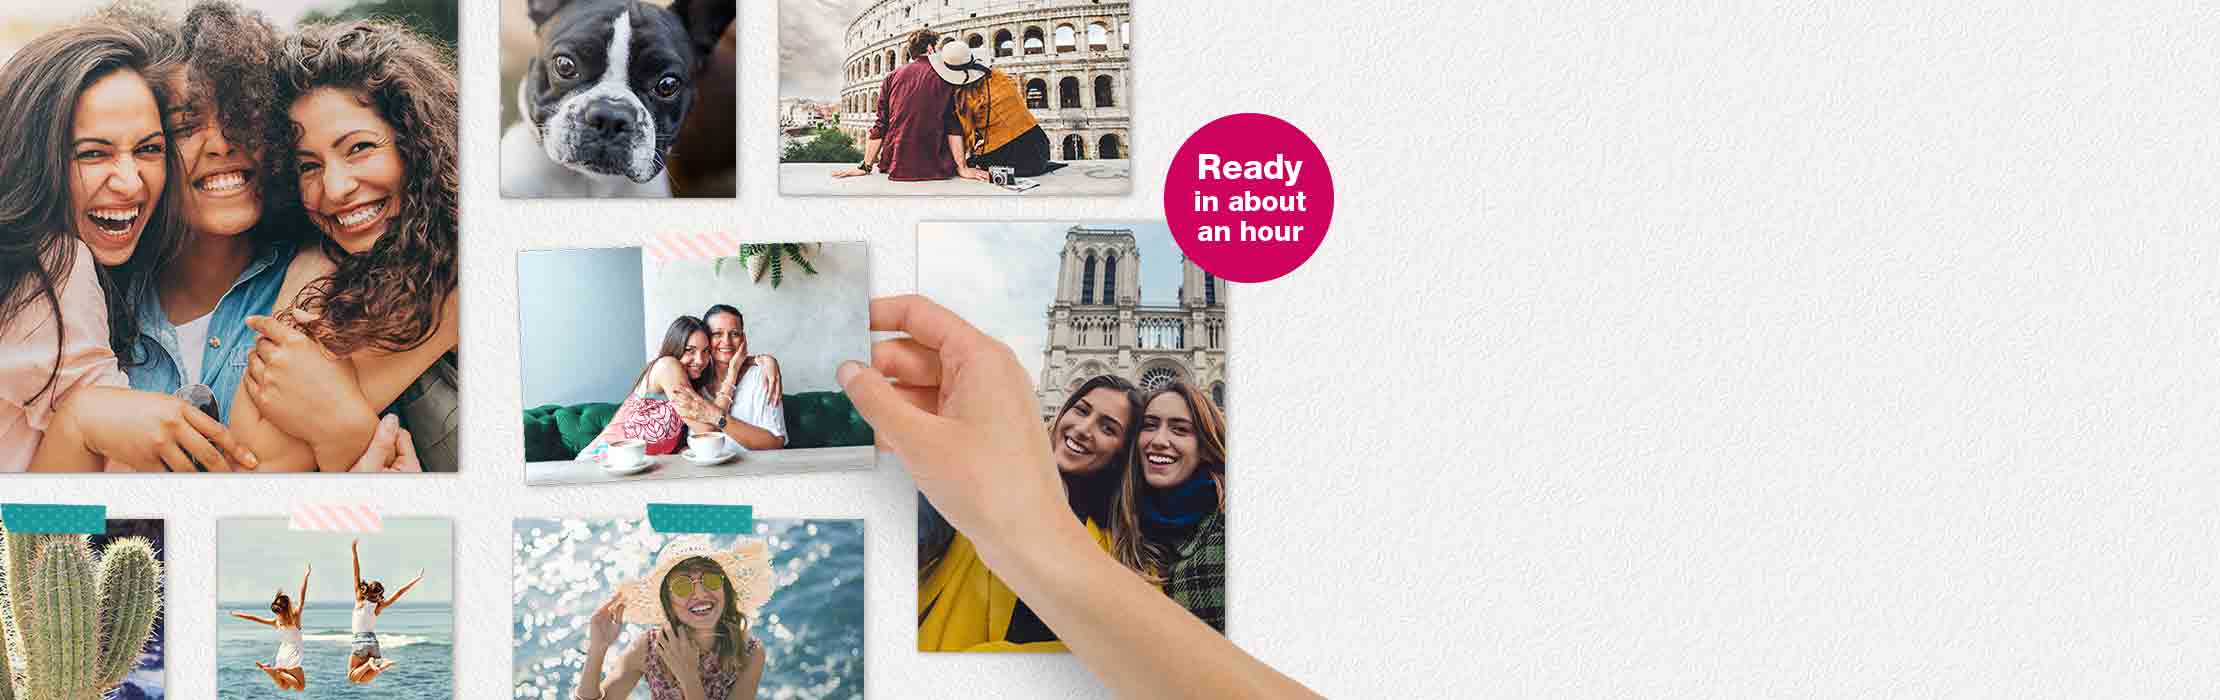 Ready in about an hour. Photo Prints made easy